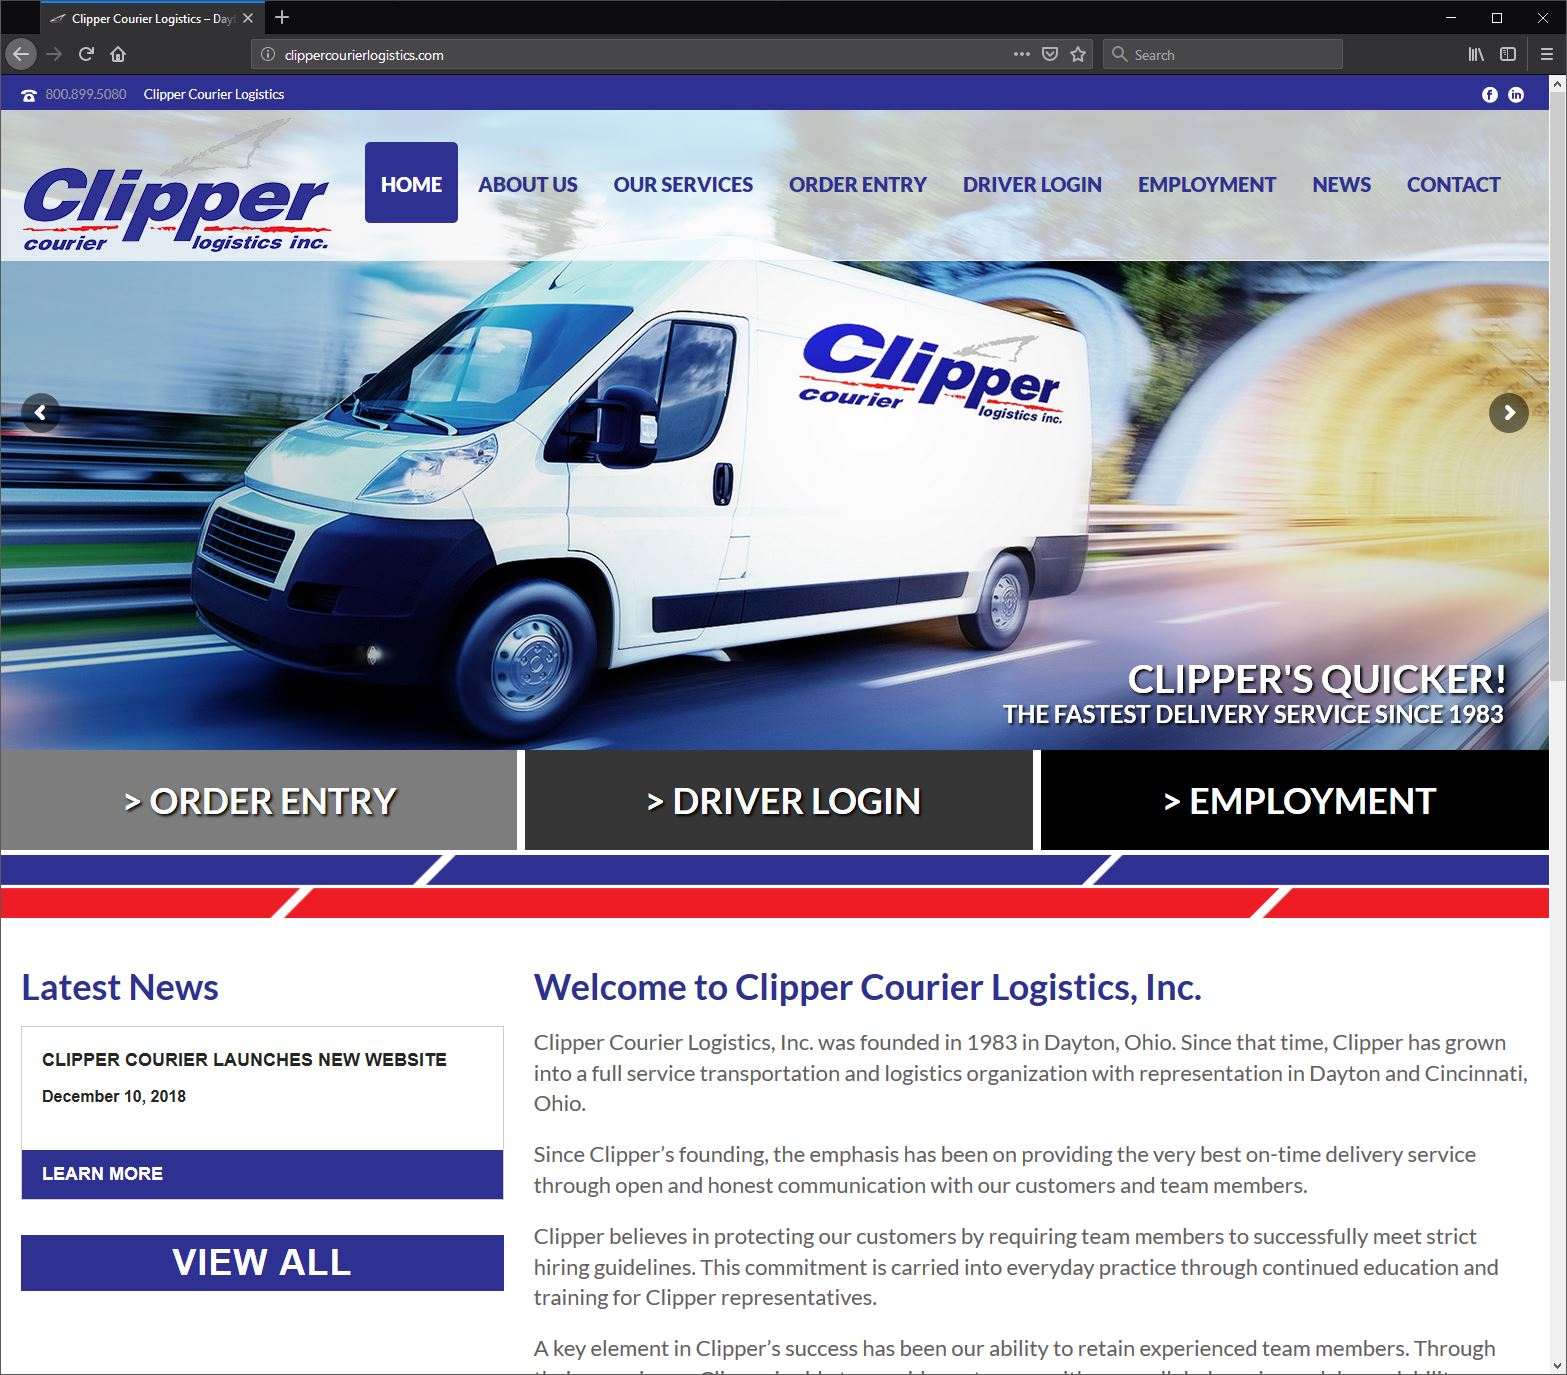 Custom Responsive Web Design for Clipper Courier Logistics - WebRiver